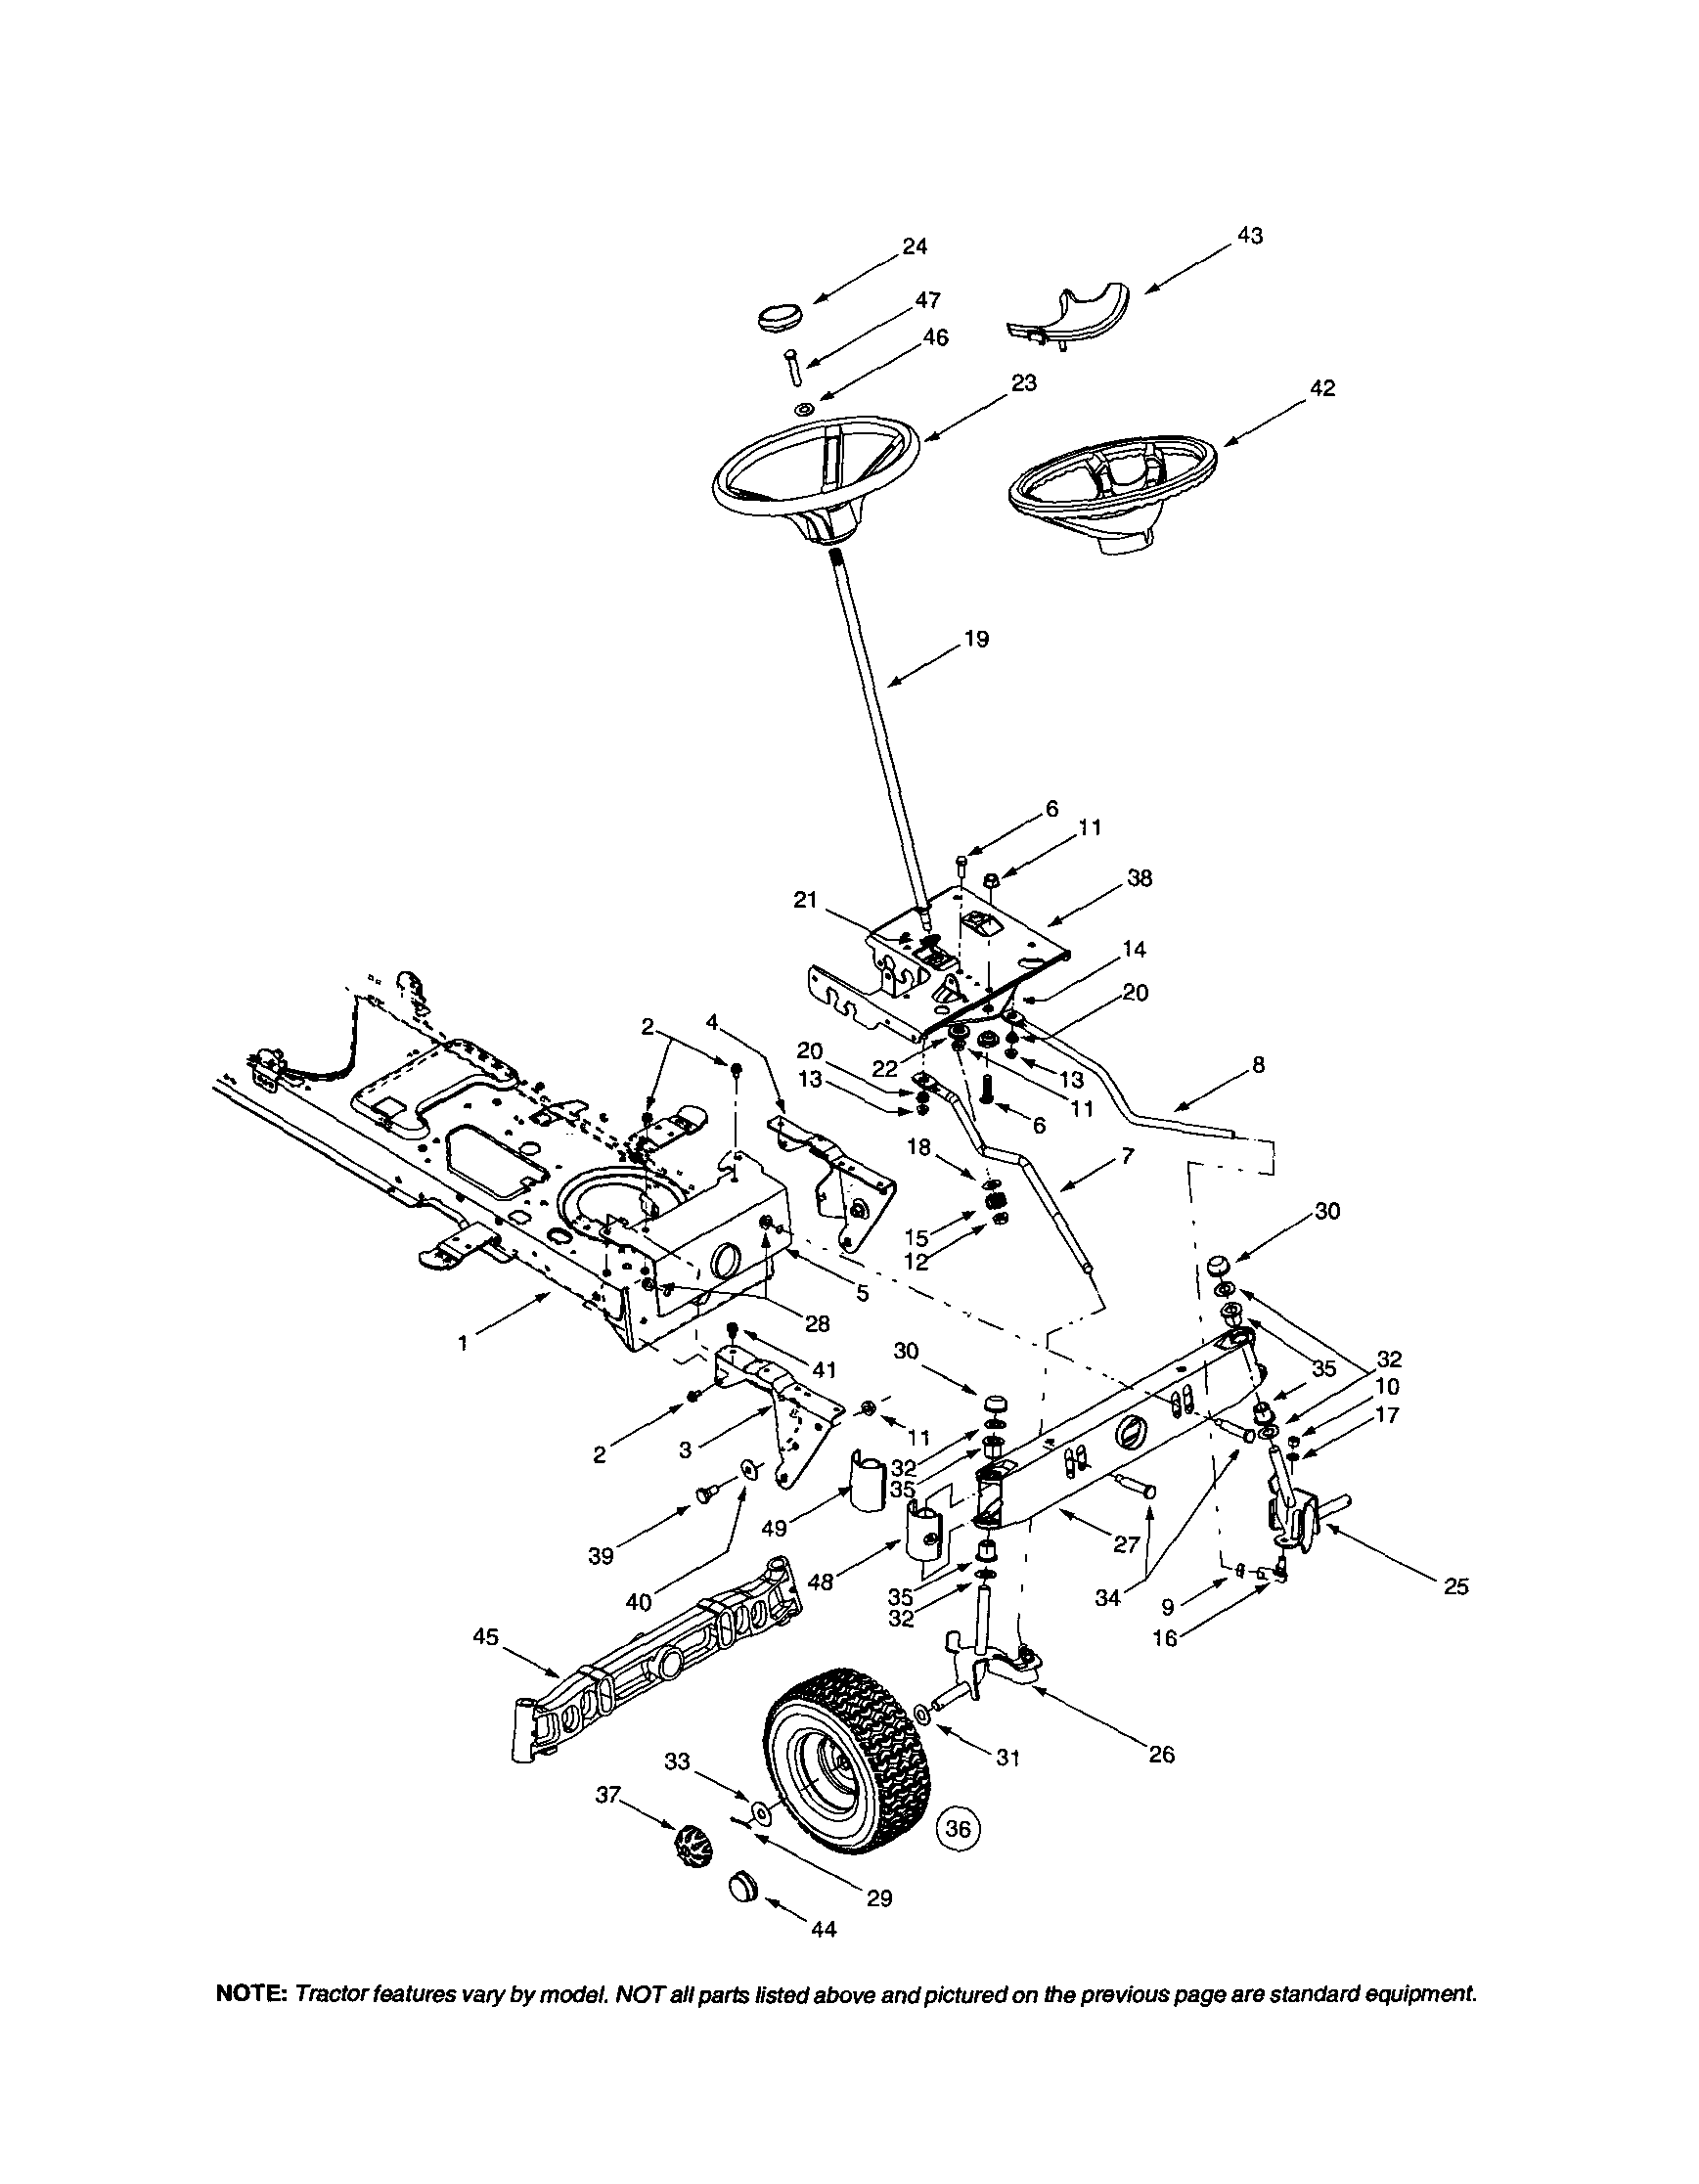 hight resolution of mtd model 13af608g062 lawn tractor genuine parts weed eater parts diagrams mtd parts diagrams